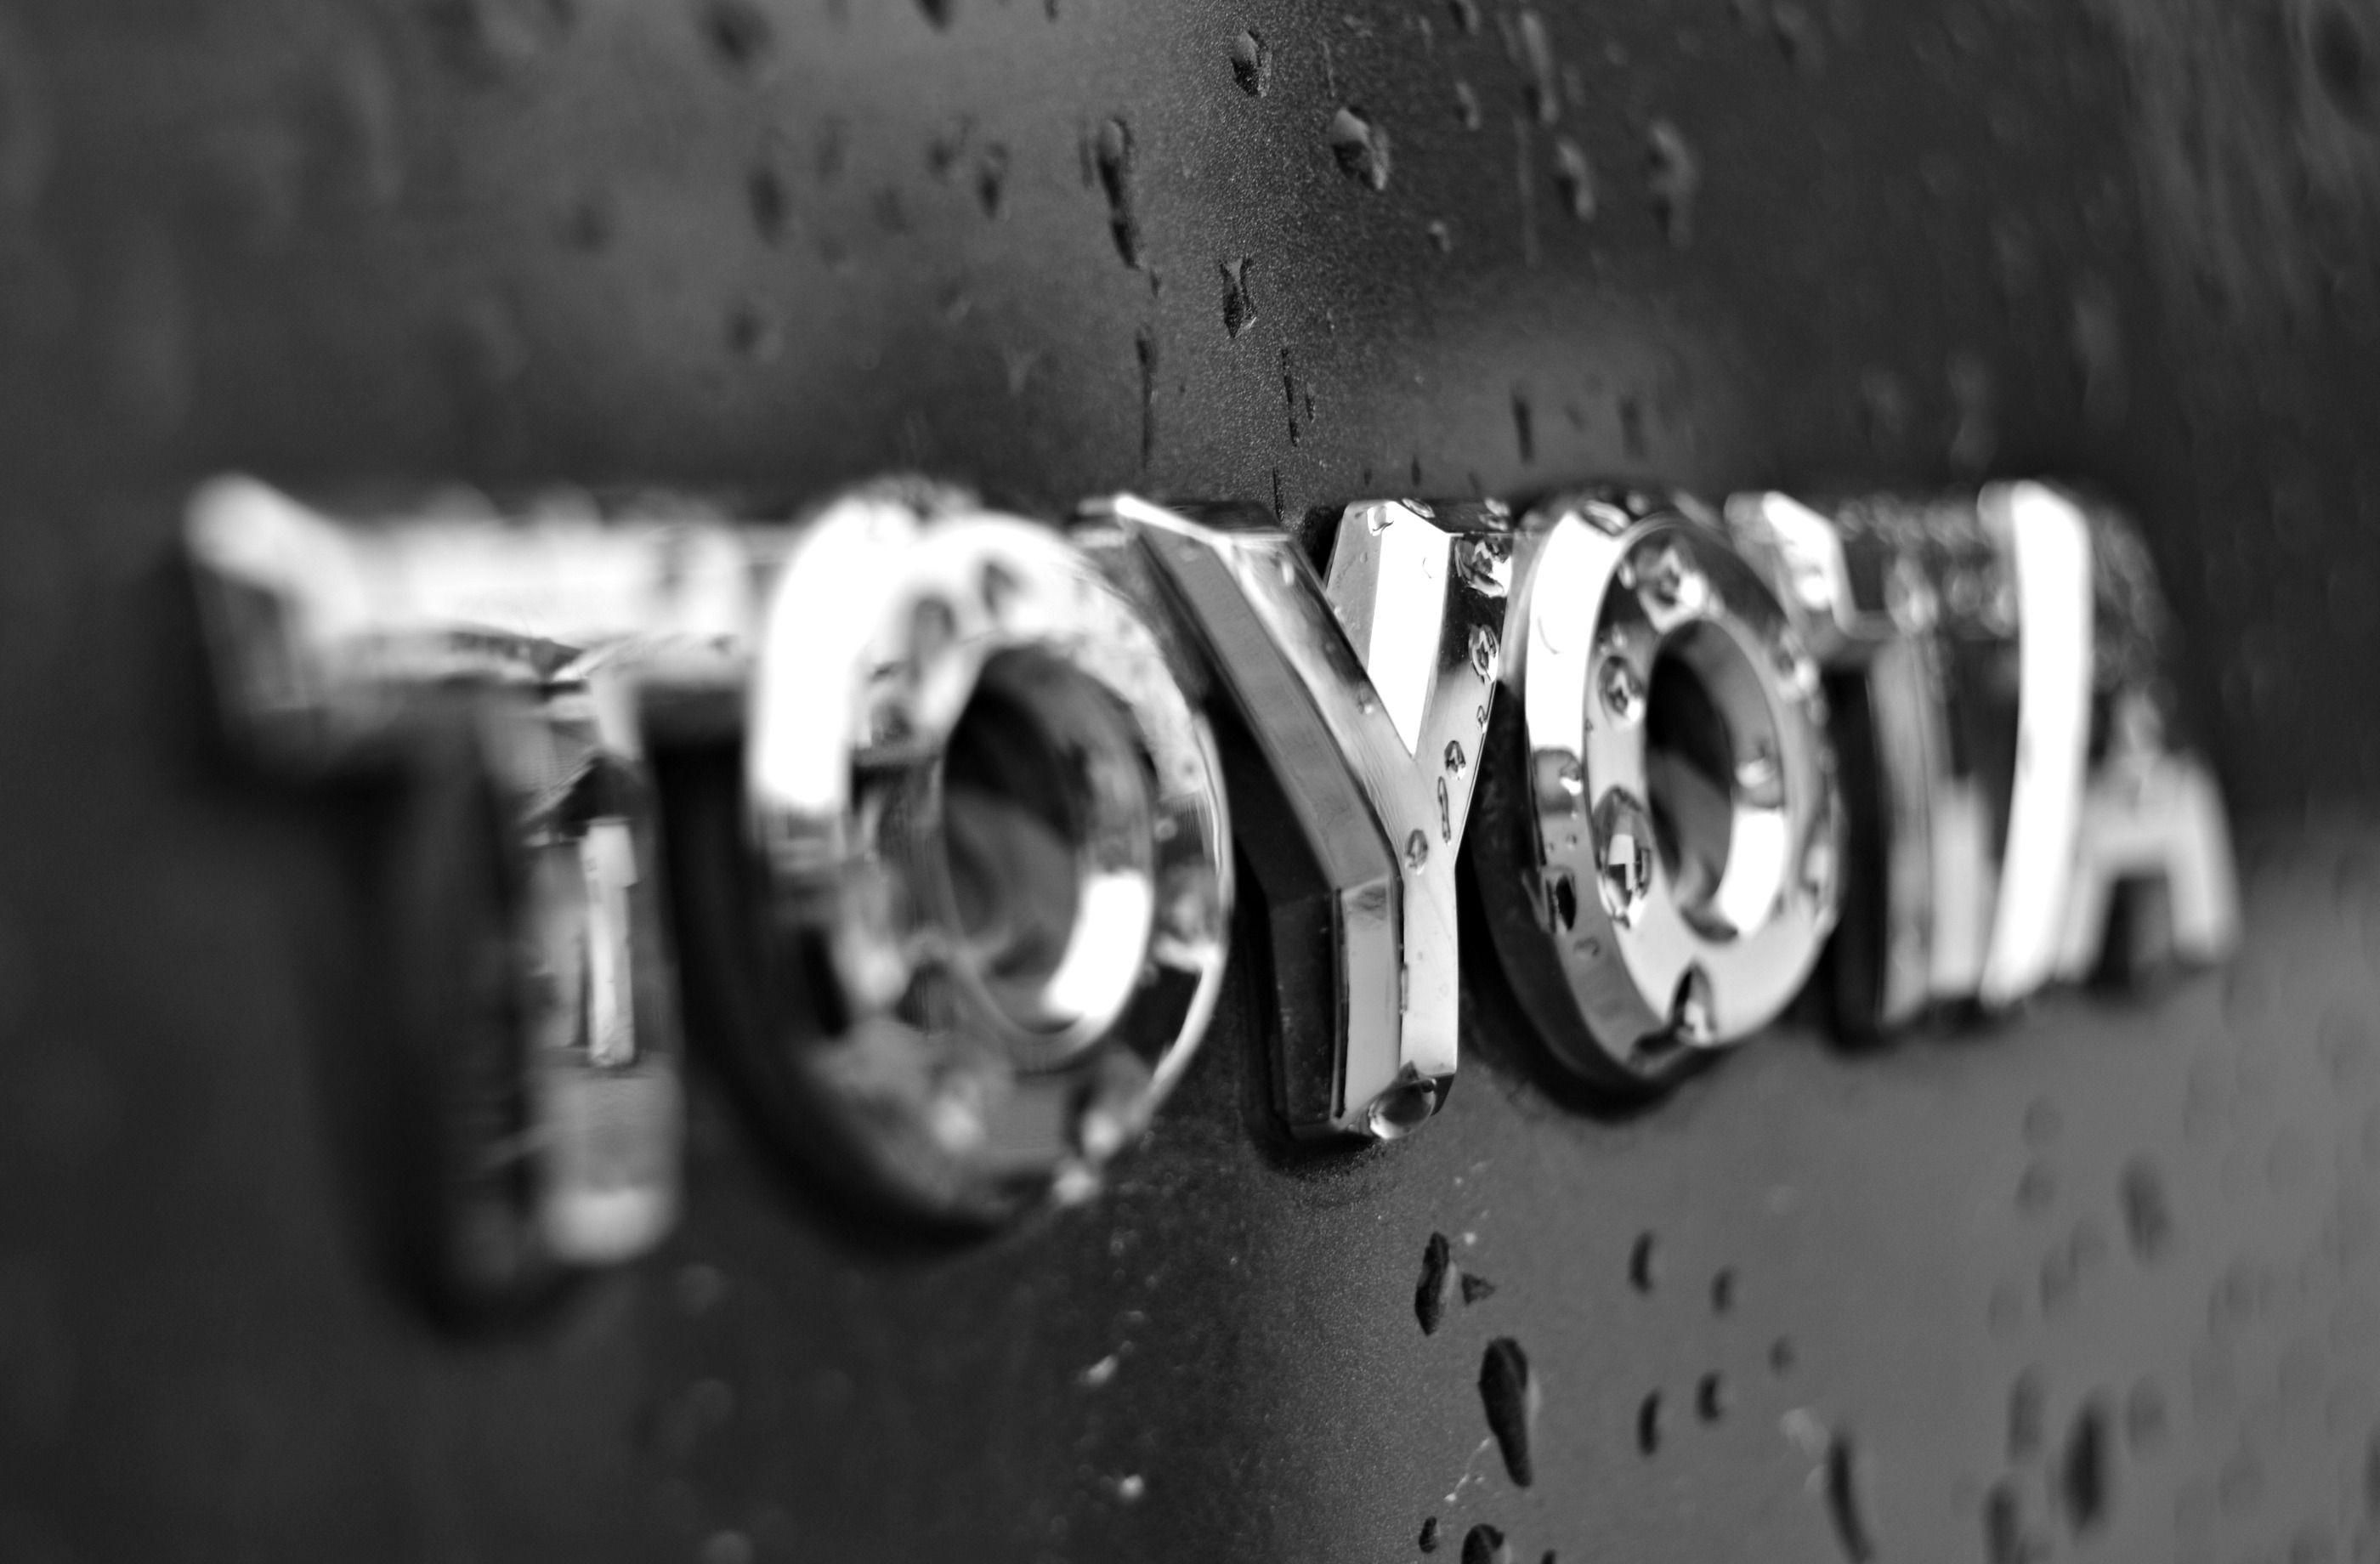 Toyota Cars Wallpapers Free Download Pin By Khalilahmadkhan On Toyota Logo Full Hd Wallpapers